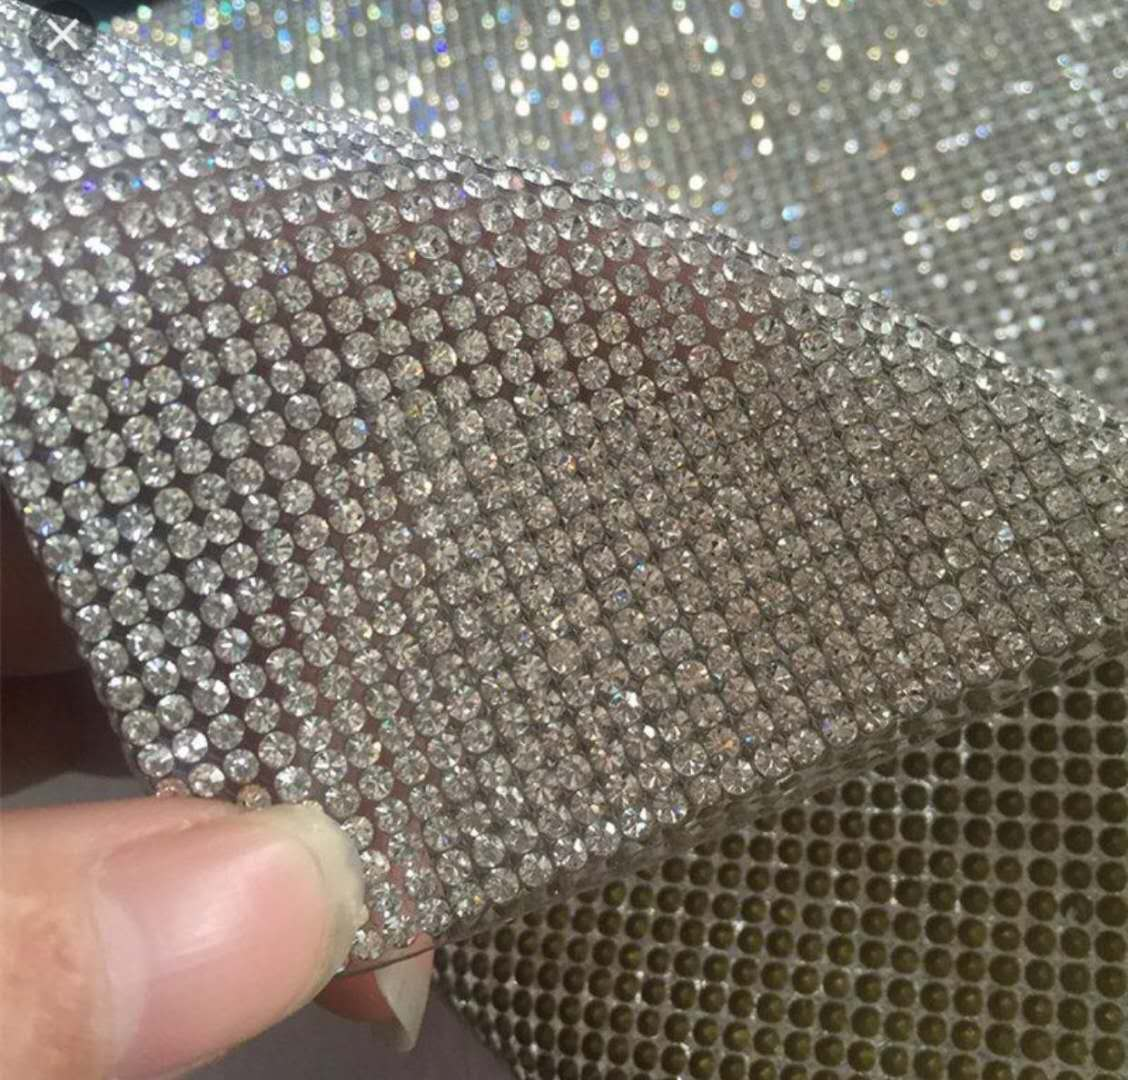 Jpstrass-2440cm Sheet Trim Mesh With Crystal Clear Used For Garment Ornaments Decoration-1